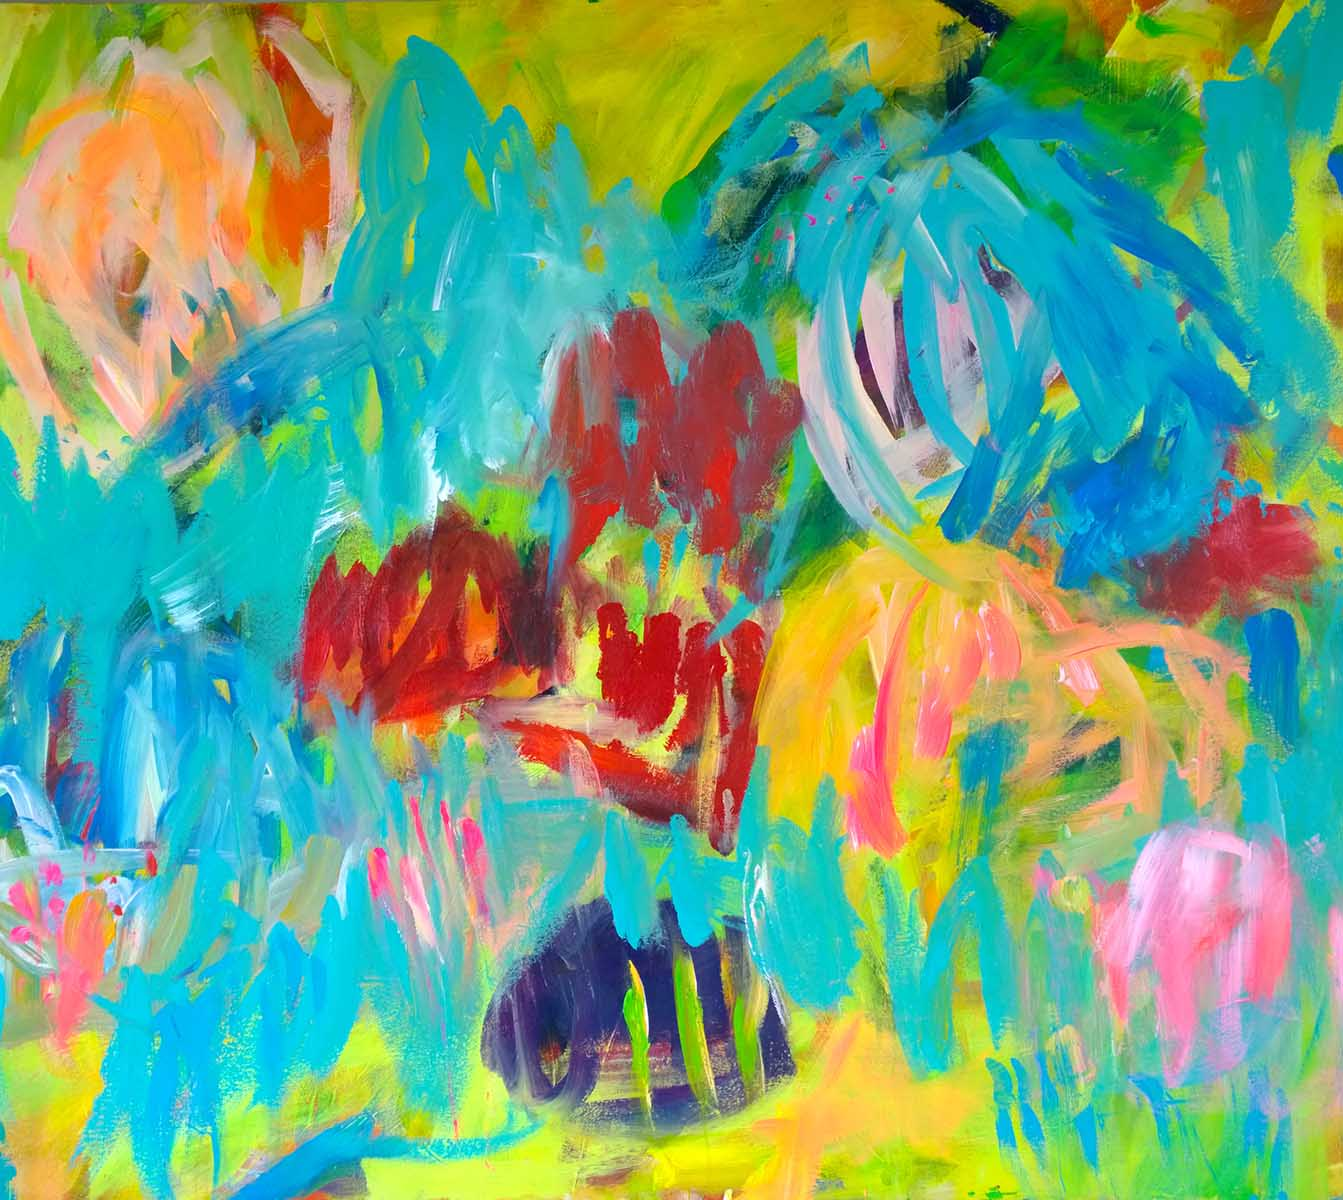 colour migrations no. 5/2016, acrylics/canvas, 100x120cm